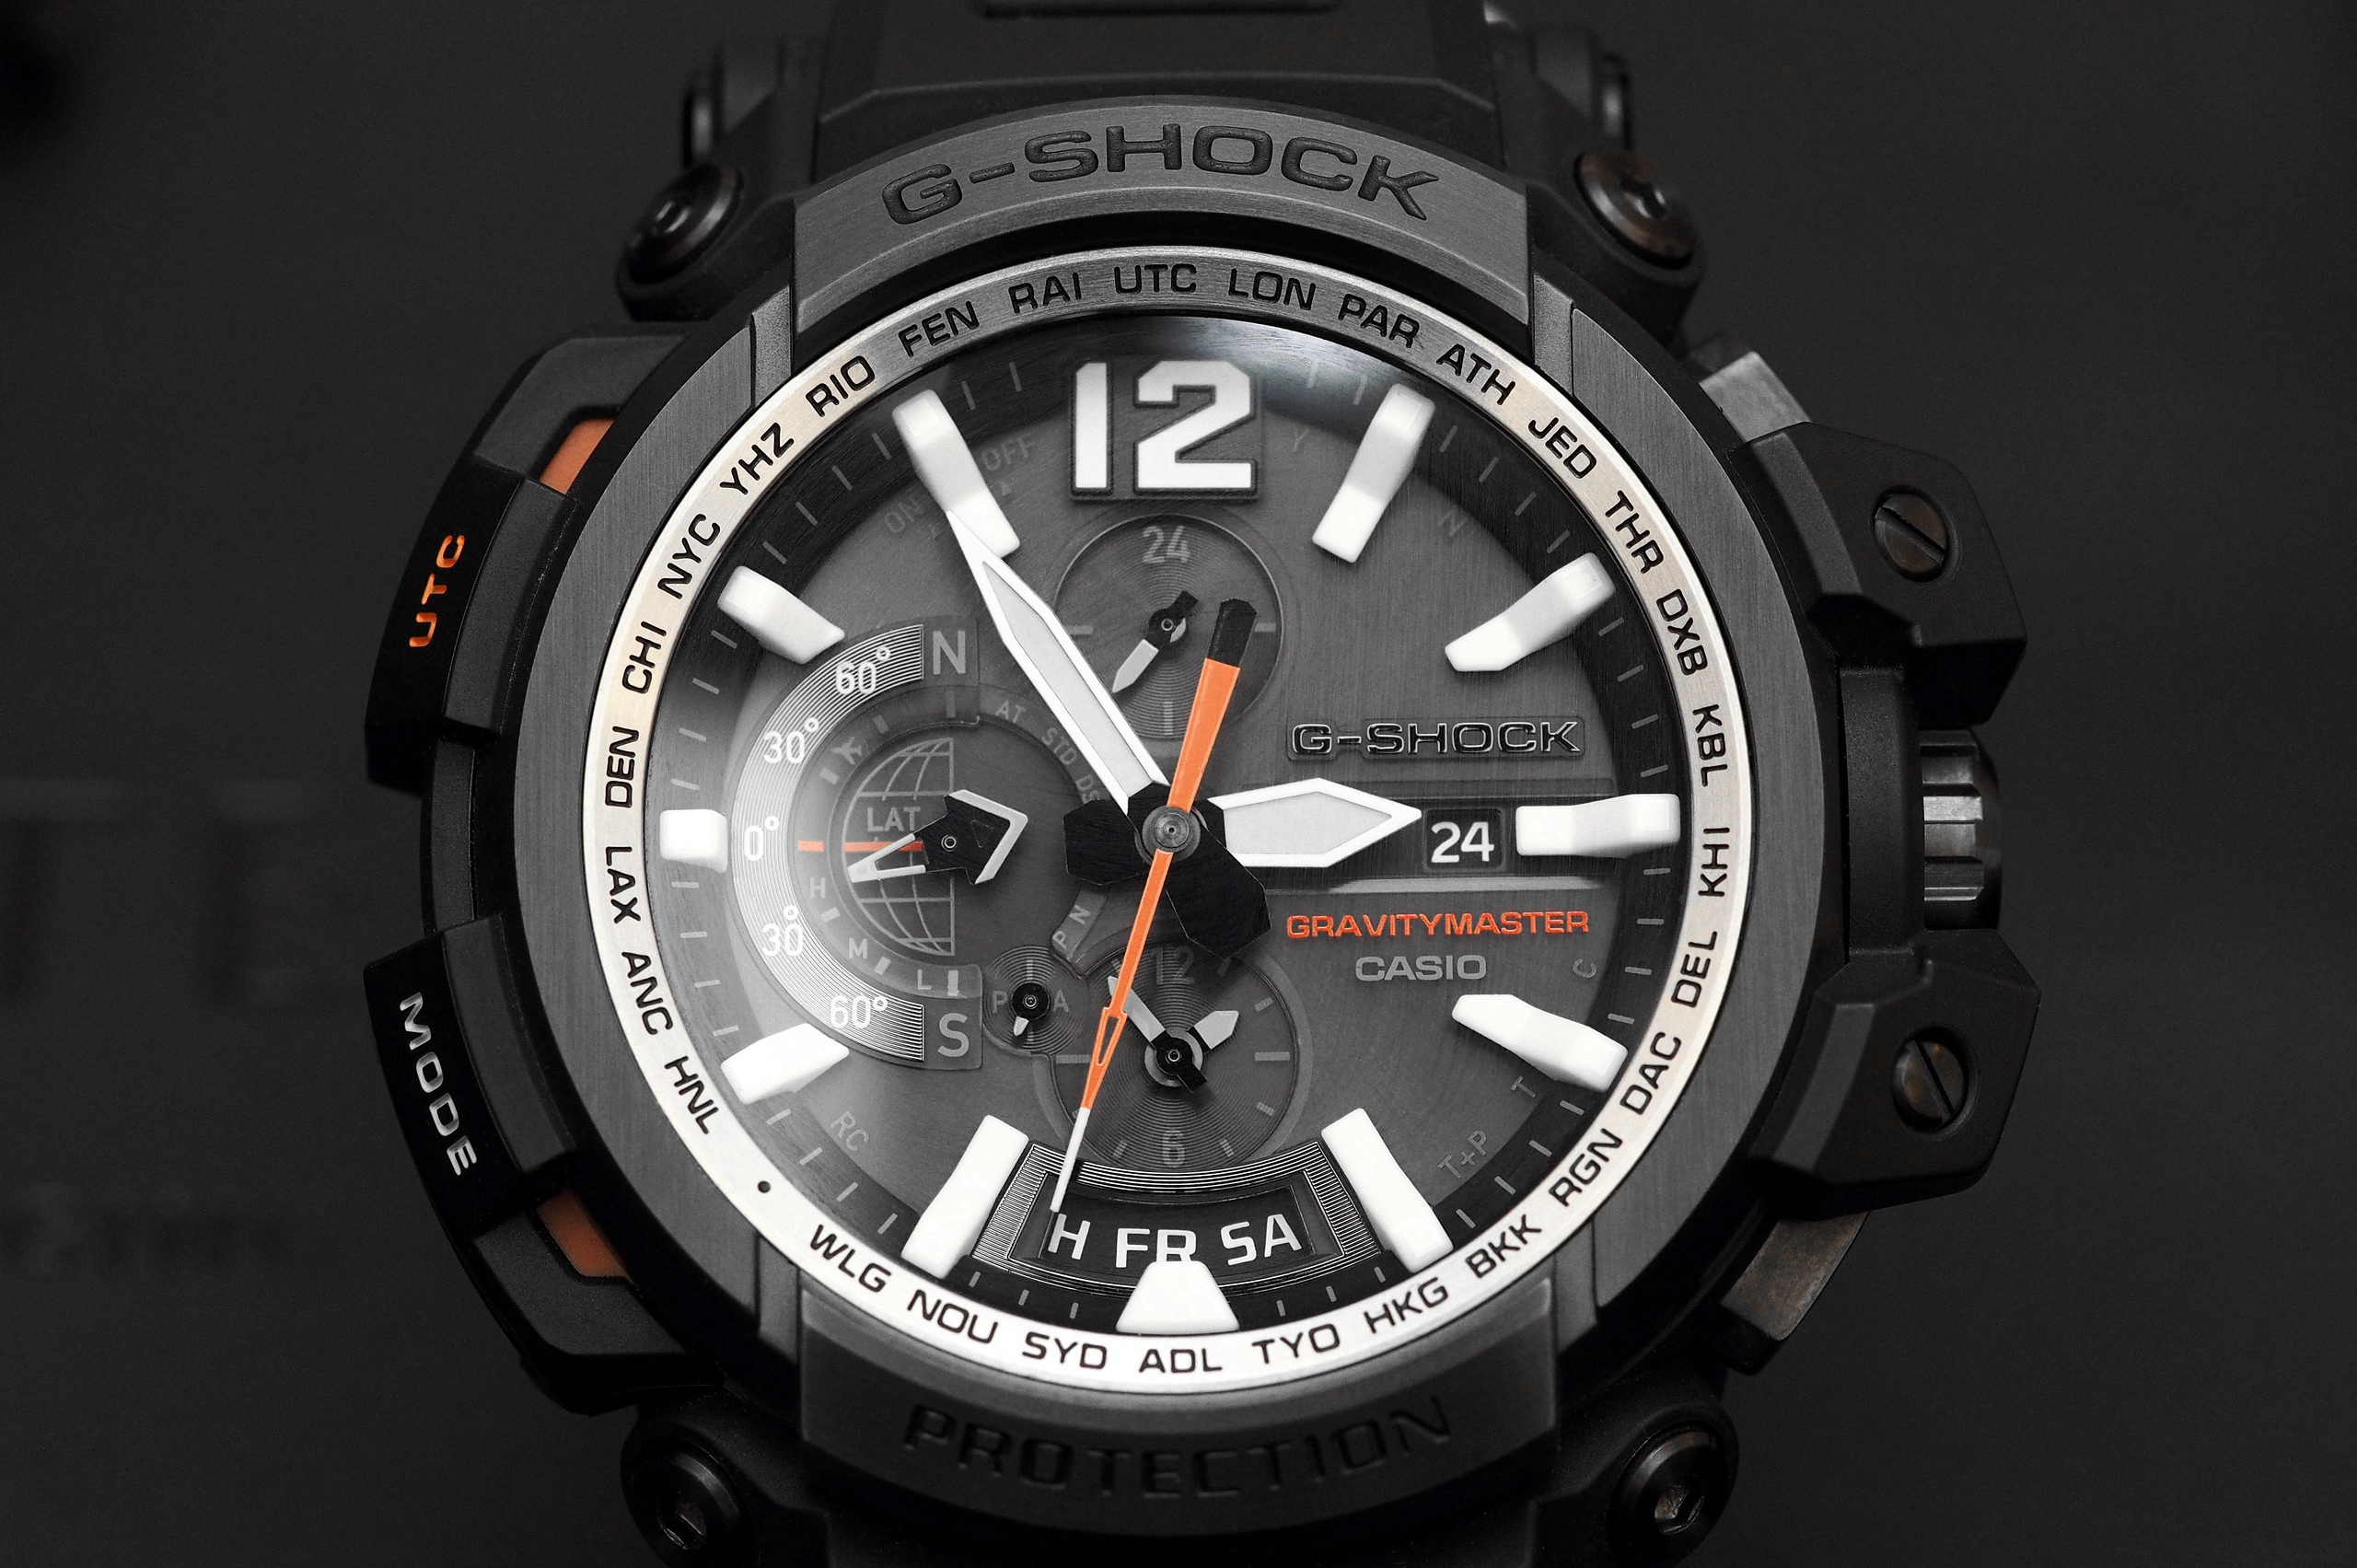 sale sports online shop womens sport rug rugged watches women for